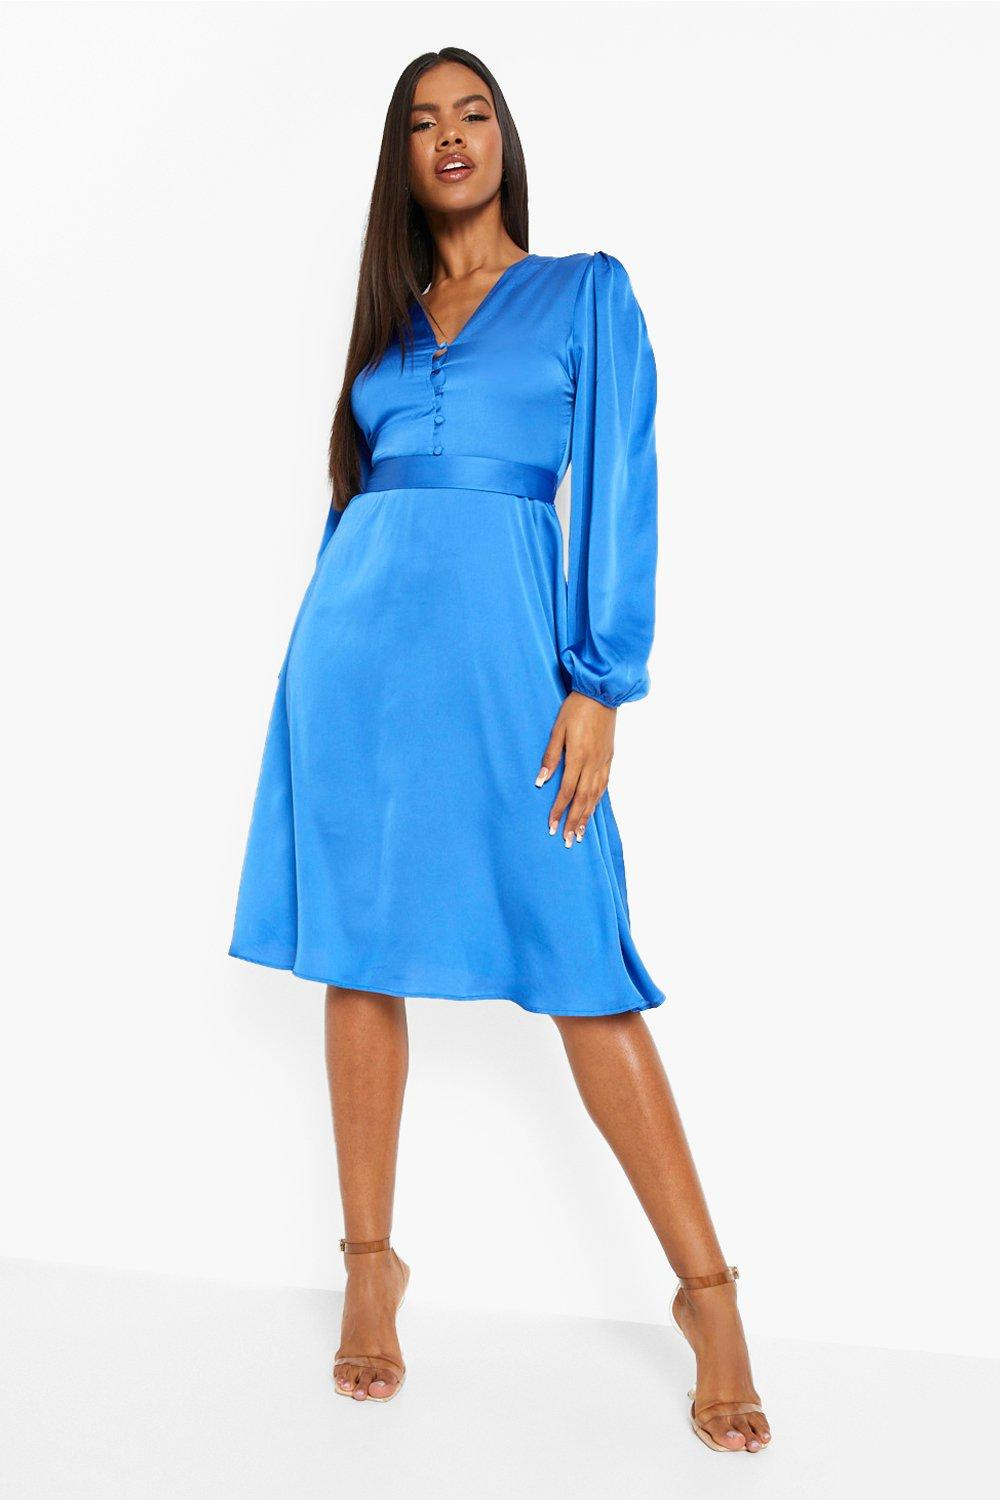 1980s Clothing, Fashion | 80s Style Clothes Womens Satin Puff Sleeve Button Detail Midi Dress - Blue - 14 $24.00 AT vintagedancer.com